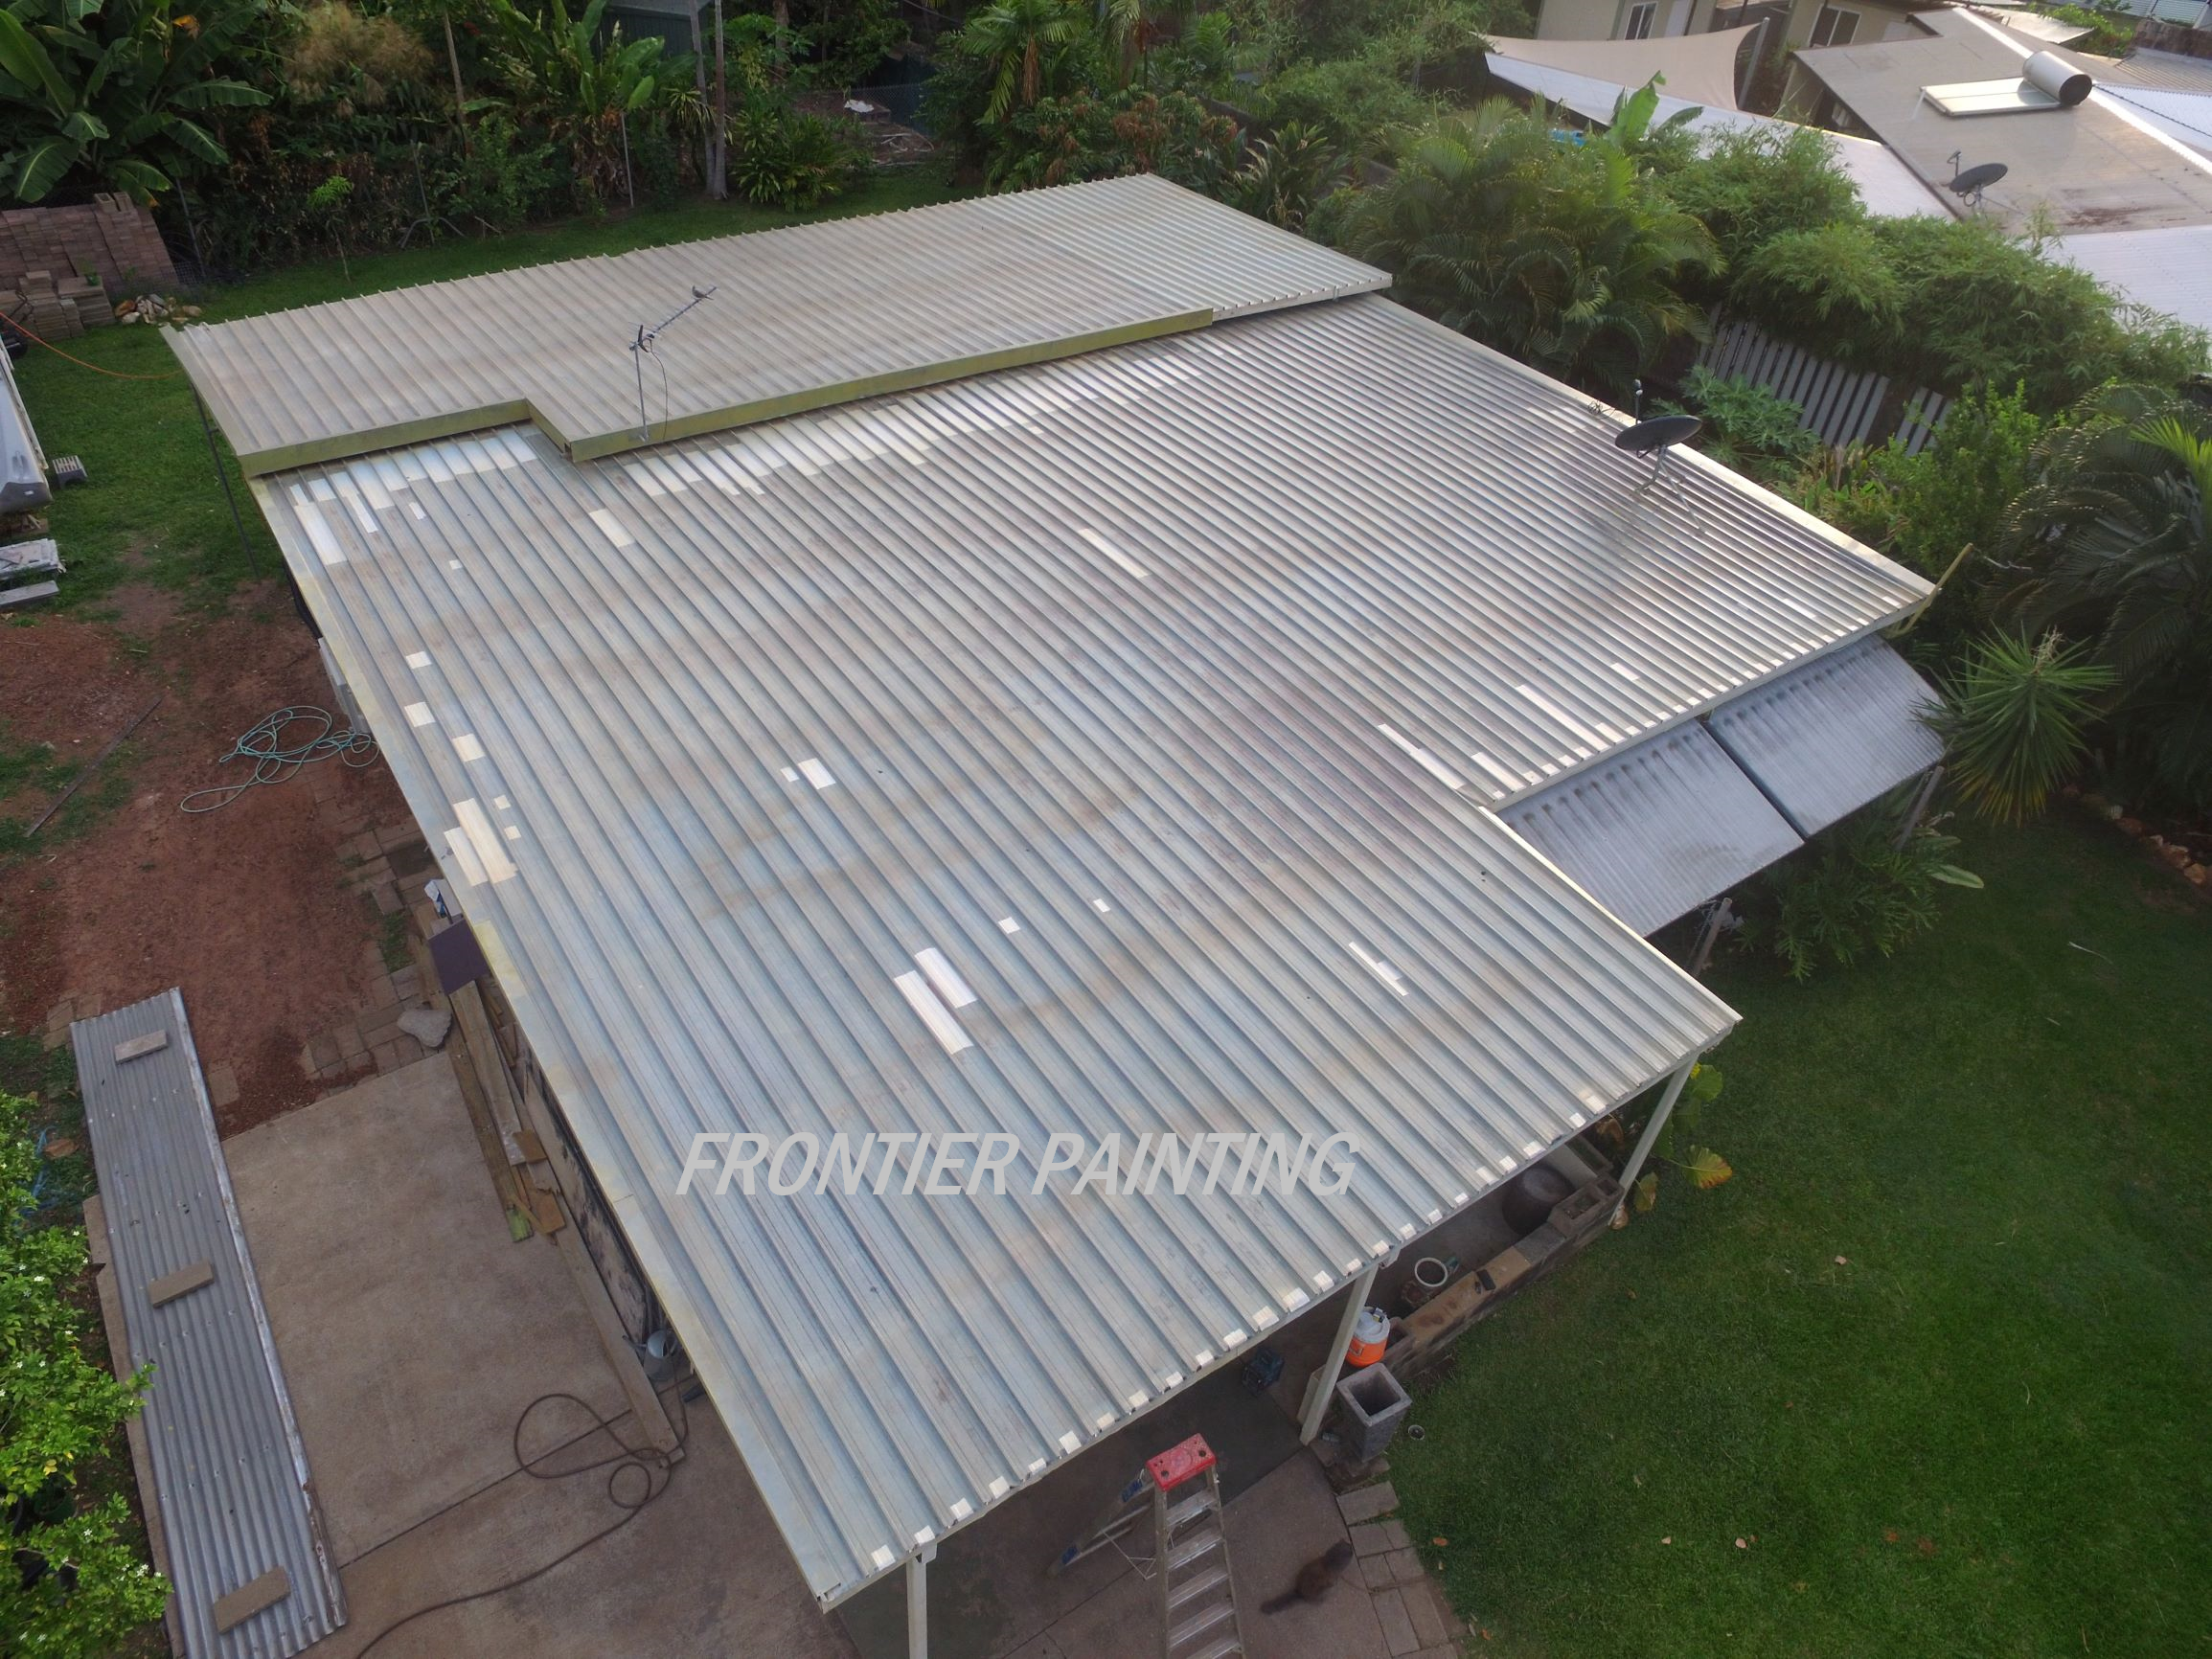 Roof Patched & prepared